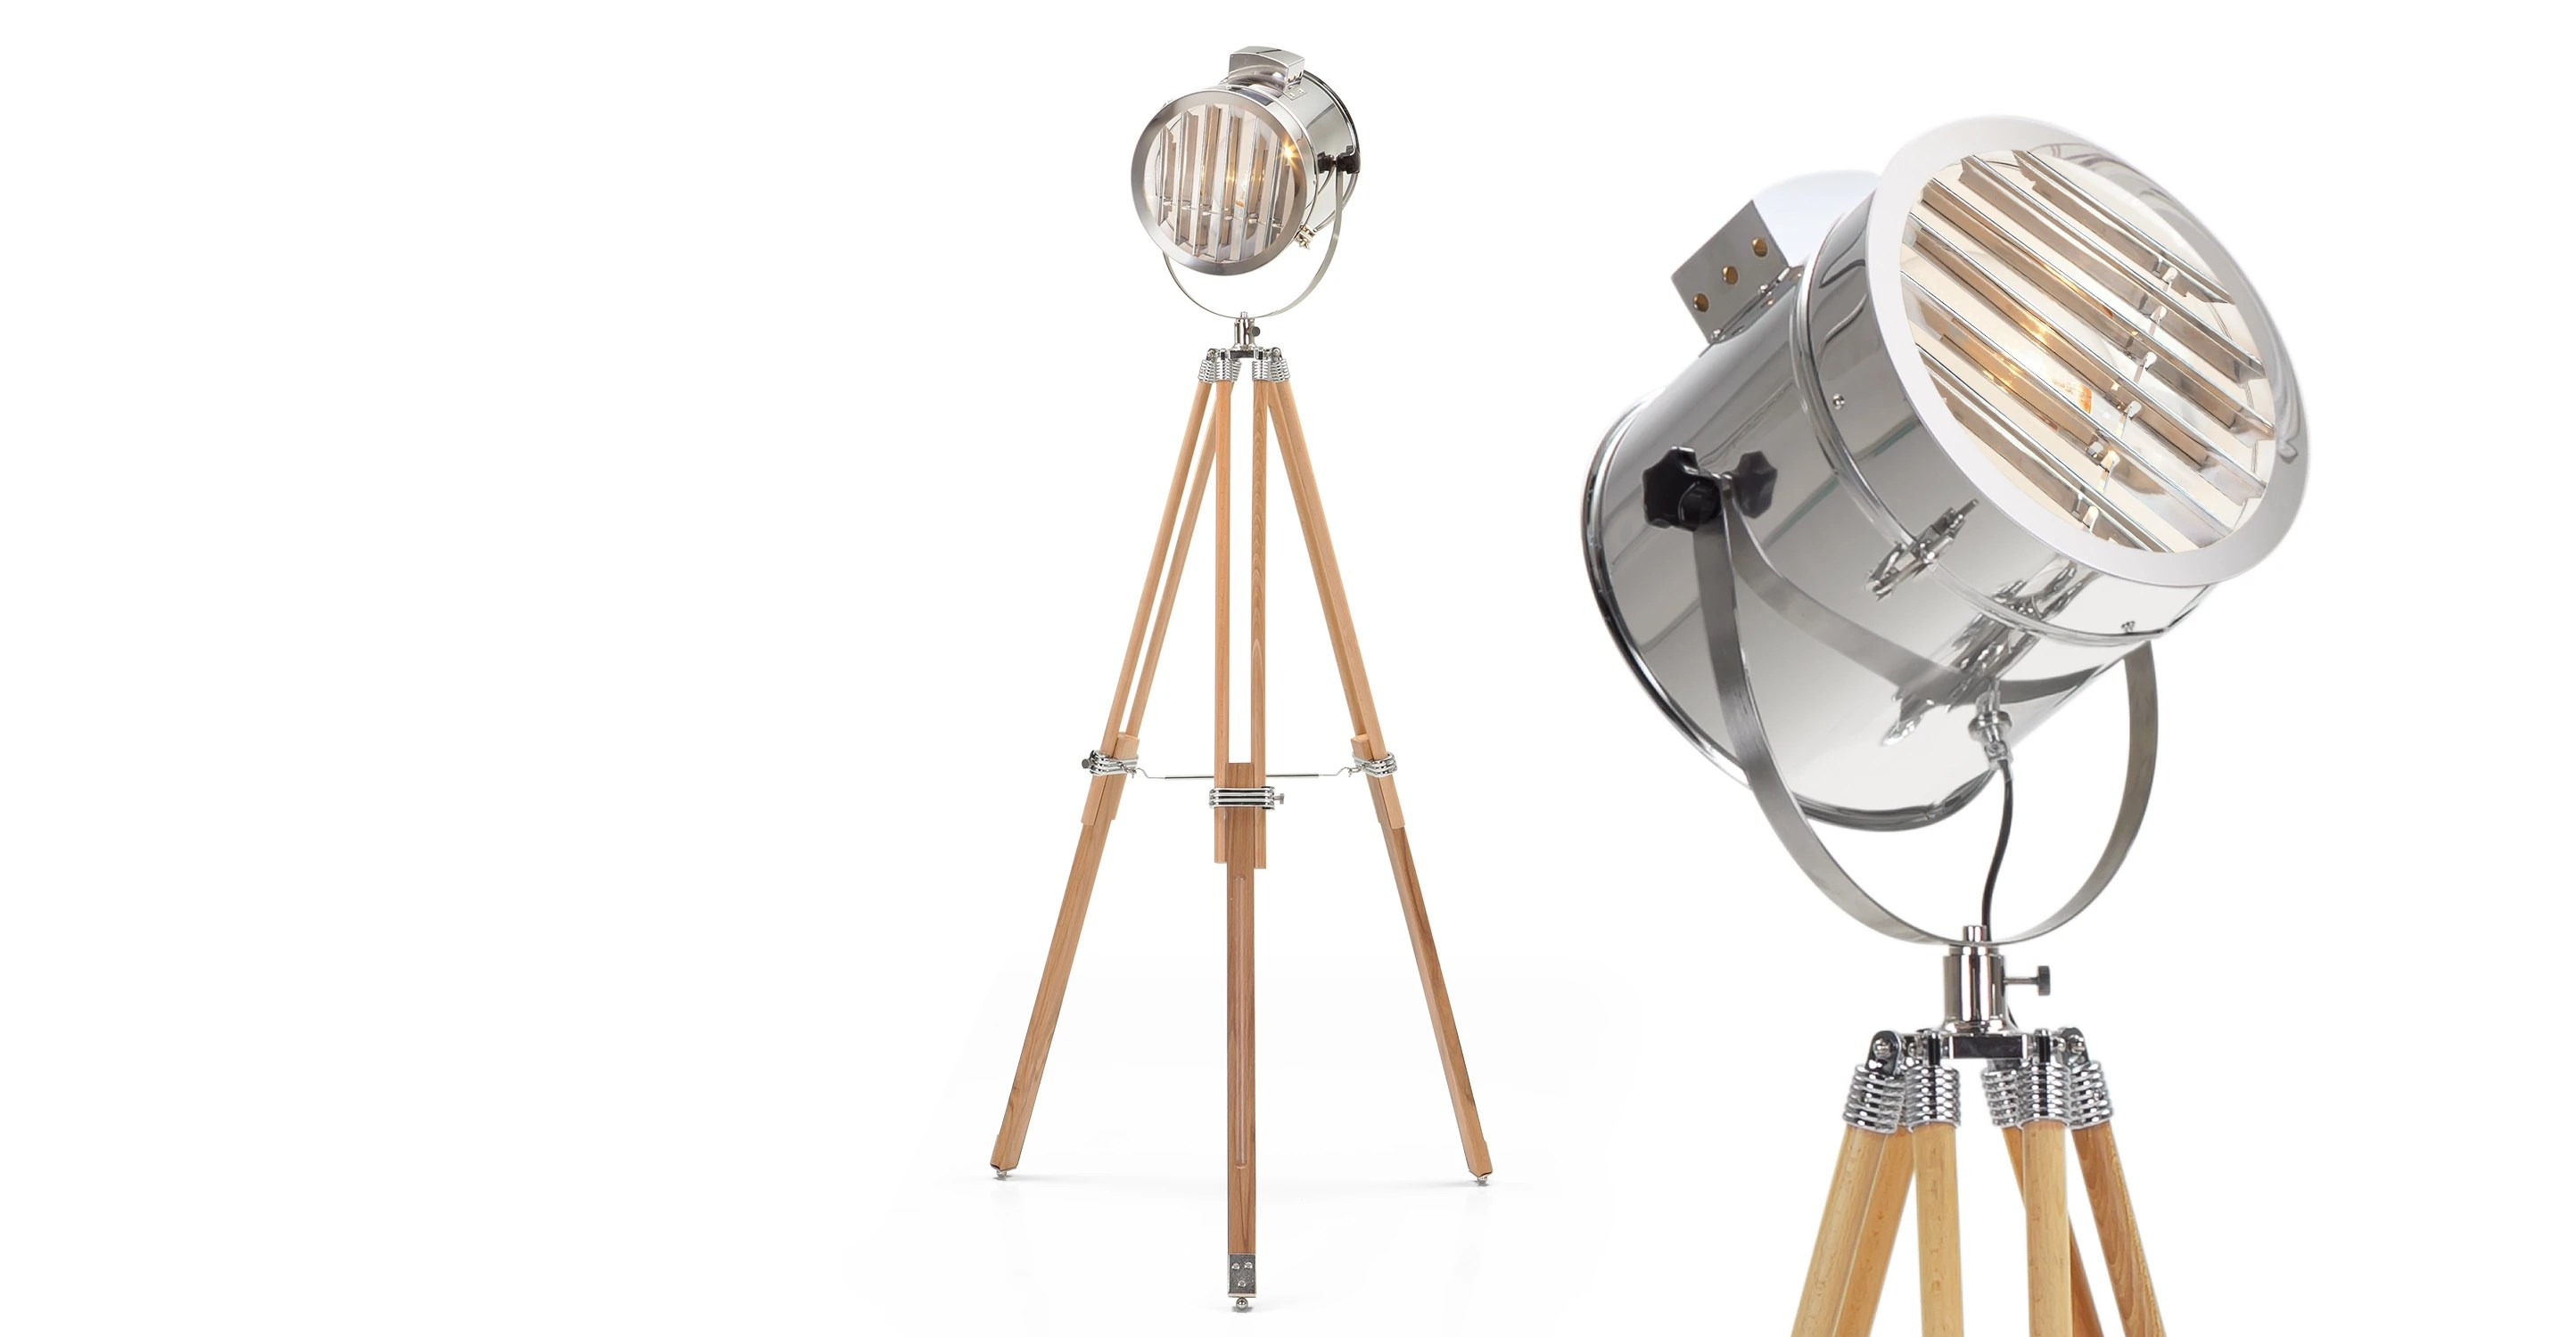 Vloerlamp Driepoot Hout Alfred Tripod Floor Lamp In Natural Wood | Made.com